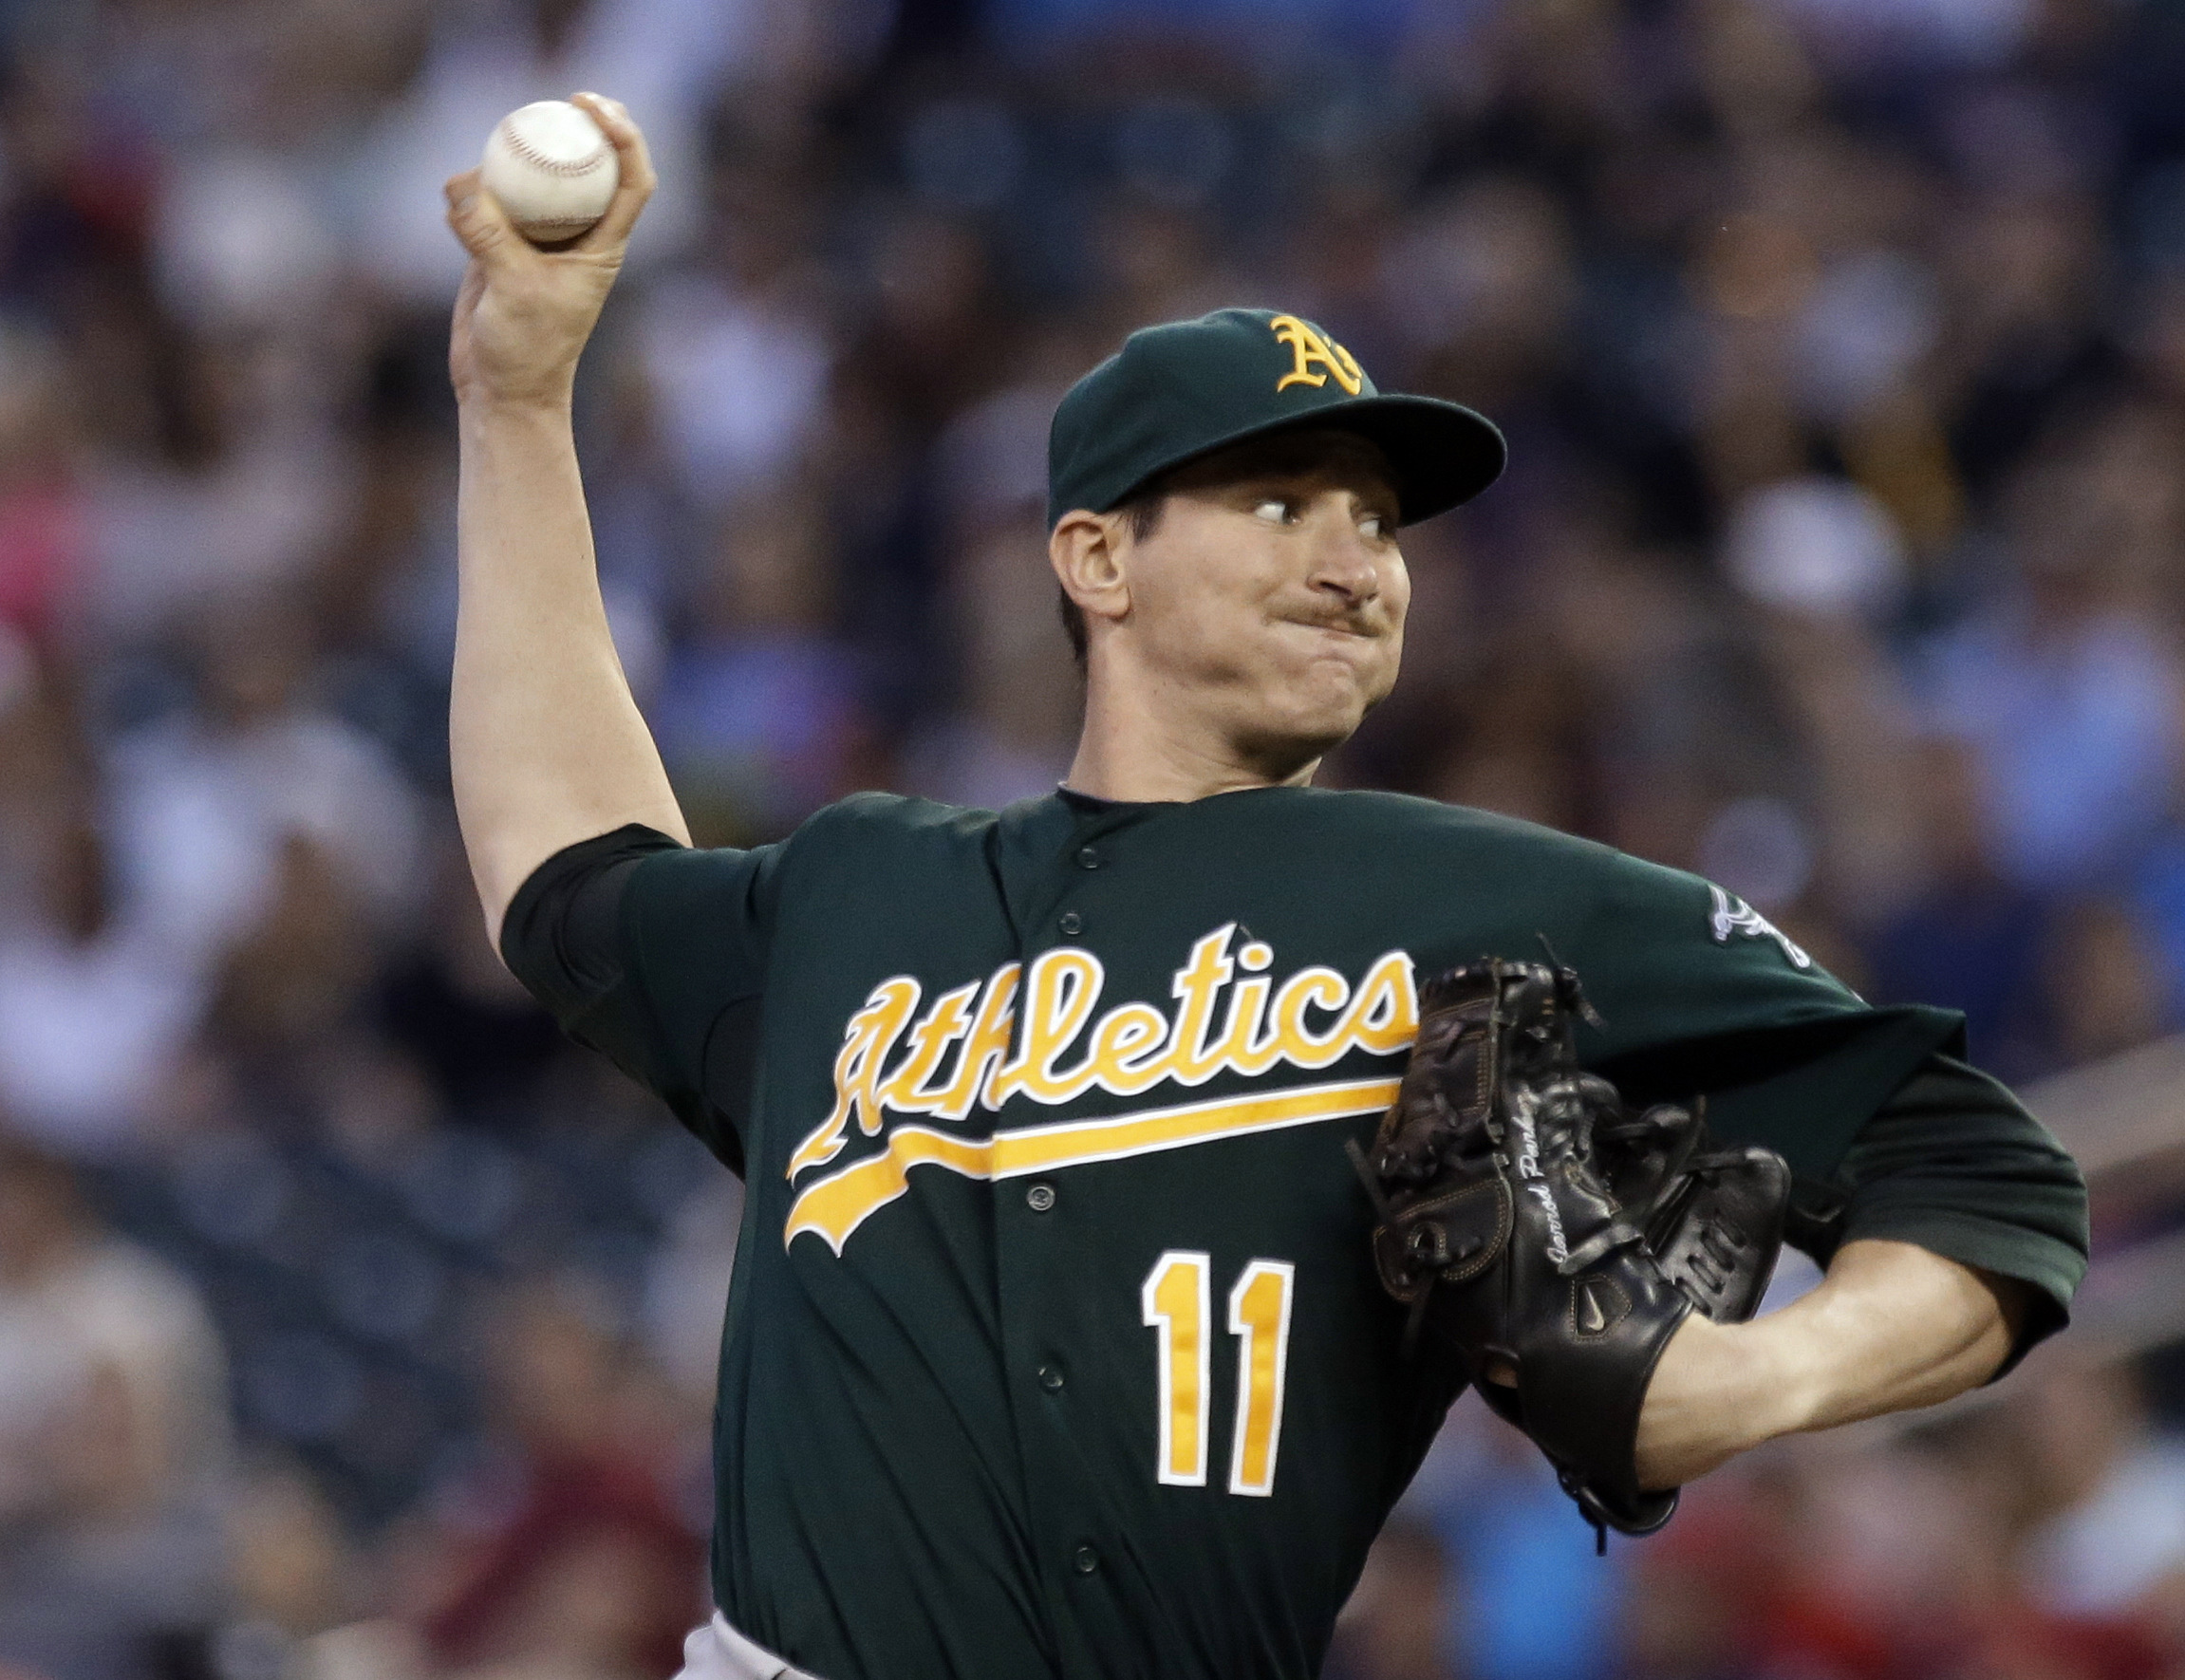 FILE - In this Sept. 10, 2013, file photo, Oakland Athletics pitcher Jarrod Parker throws against the Minnesota Twins during a baseball game in Minneapolis.  Parker is uncertain about the protocol for his recovery from a fractured elbow following two Tomm